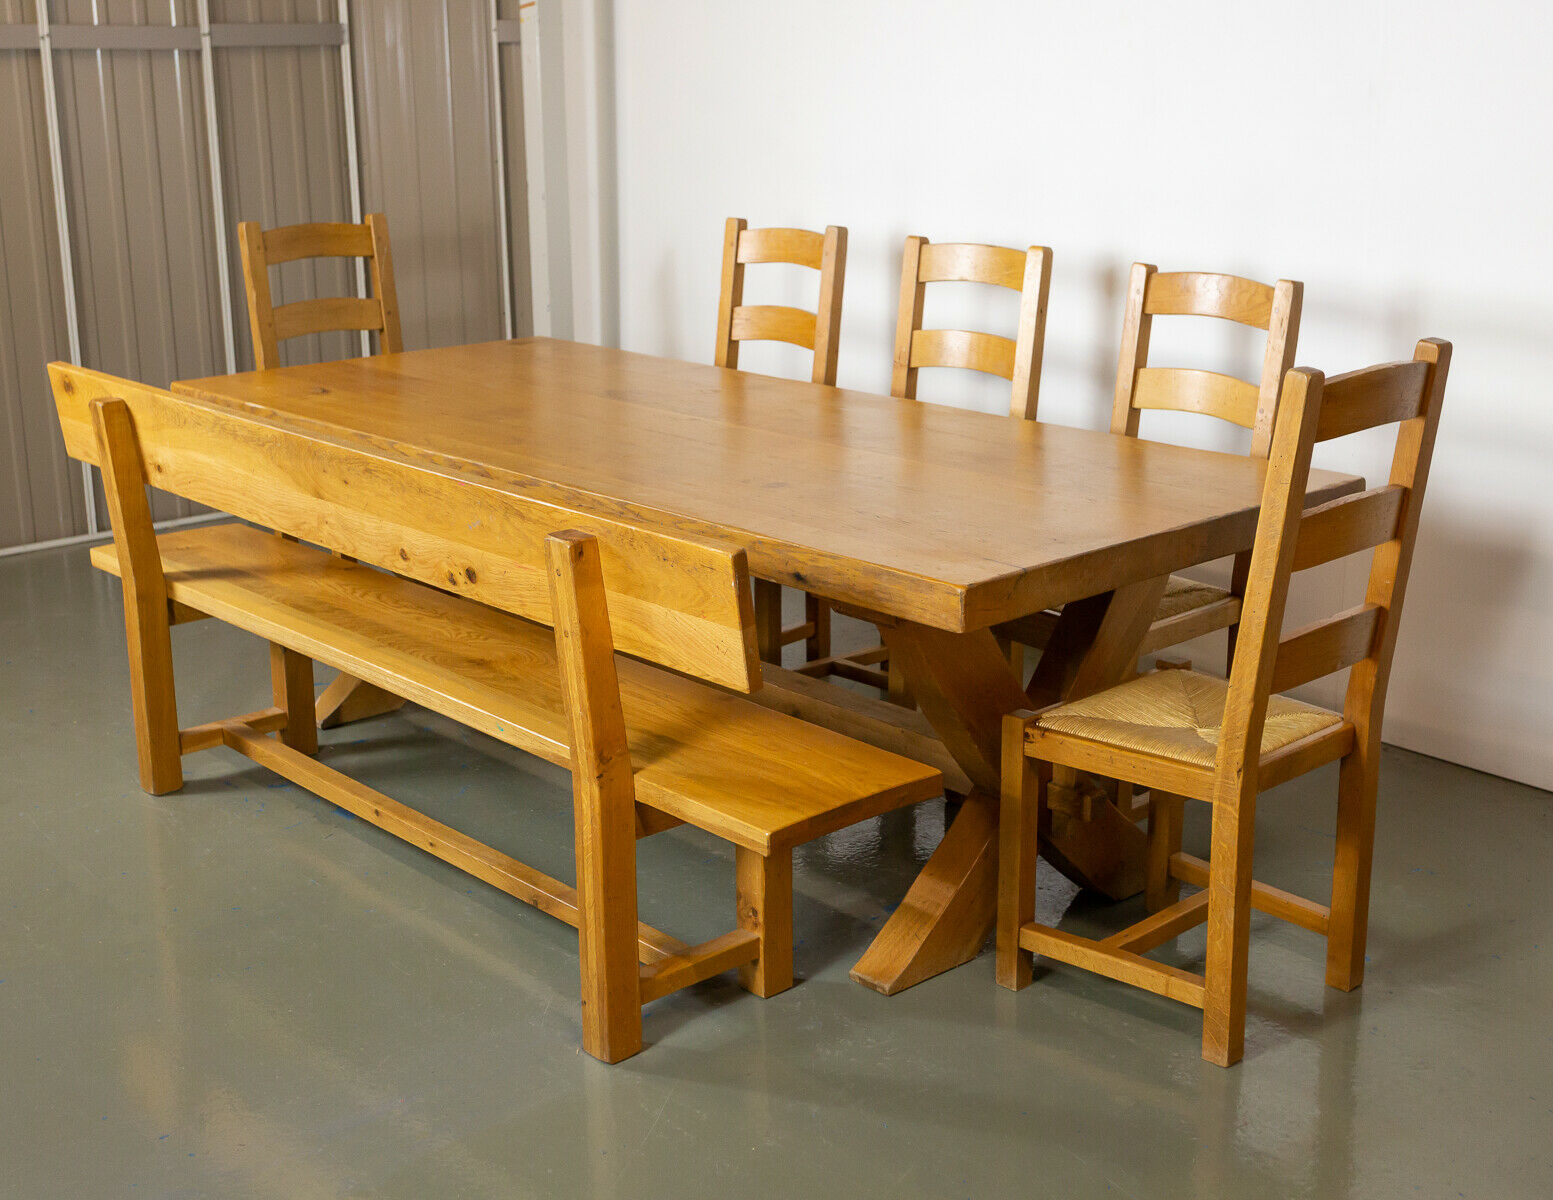 Rossiters of Bath Solid Wood Table, Chairs and Bench